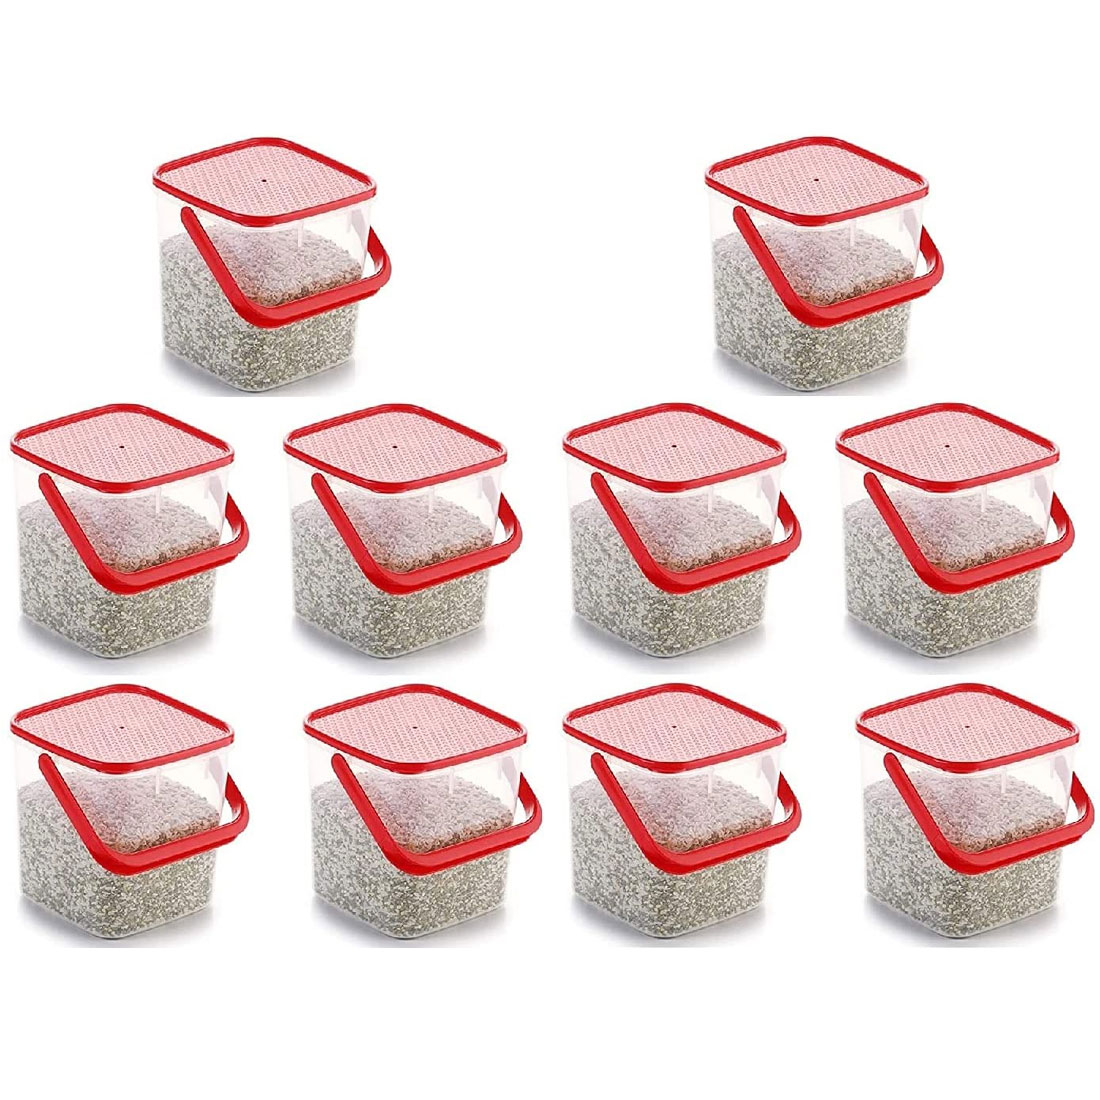 SOLOMON PREMIUM QUALITY 3KG SQUARE CONTAINER WITH RED CAP PACK OF 10